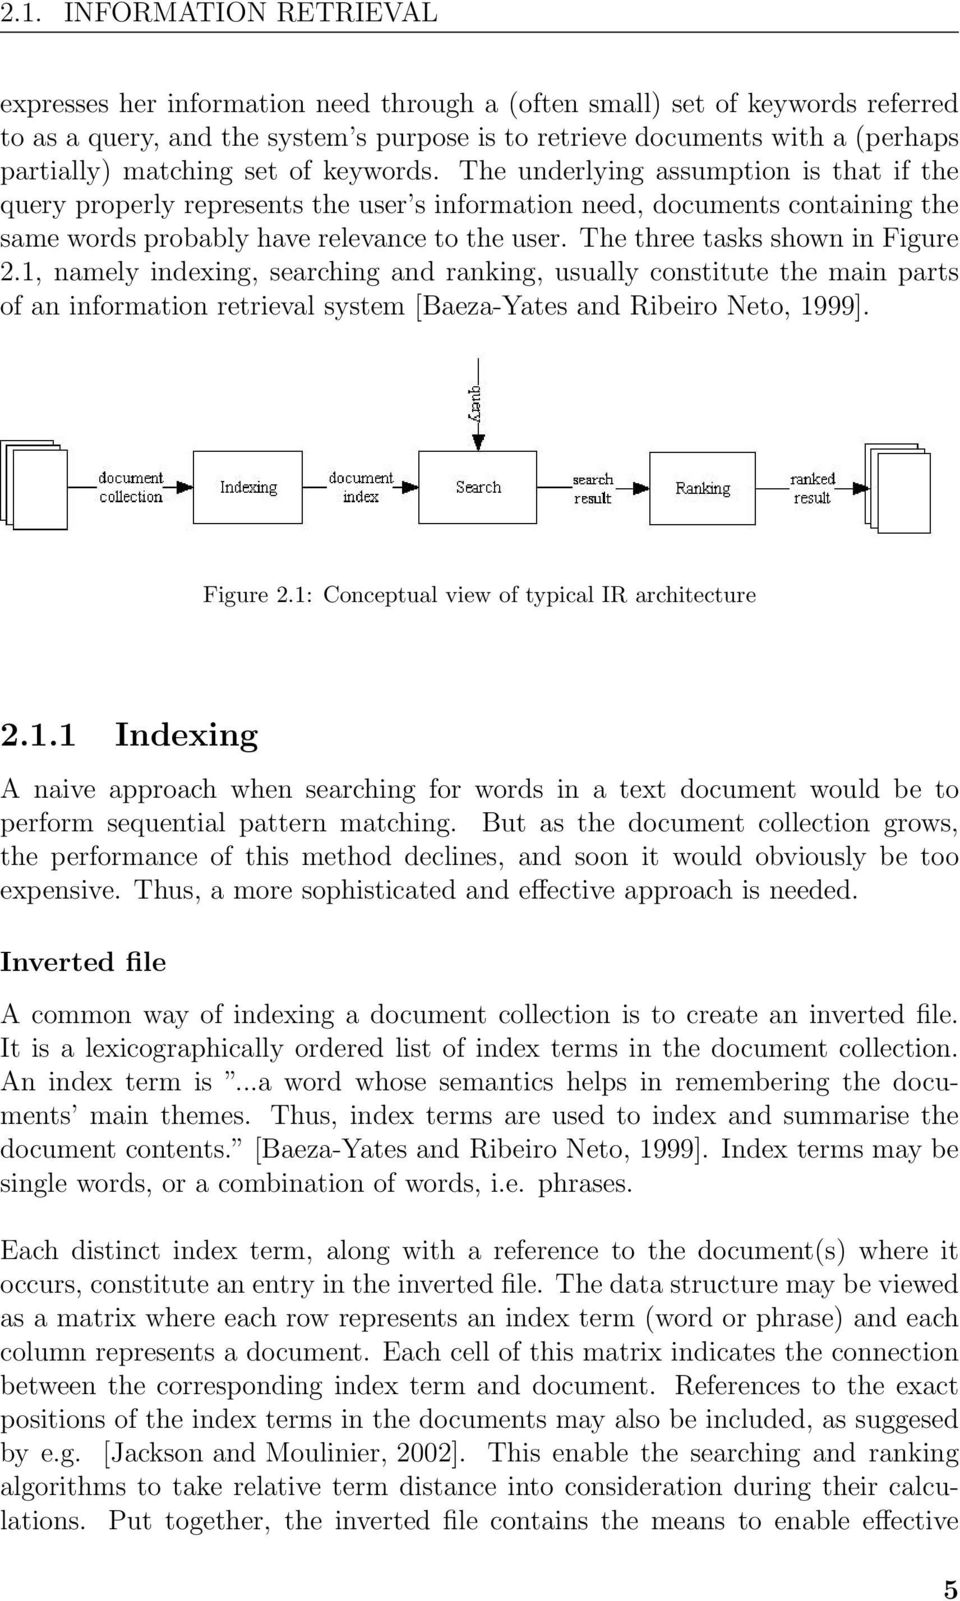 The three tasks shown in Figure 2.1, namely indexing, searching and ranking, usually constitute the main parts of an information retrieval system [Baeza-Yates and Ribeiro Neto, 1999]. Figure 2.1: Conceptual view of typical IR architecture 2.